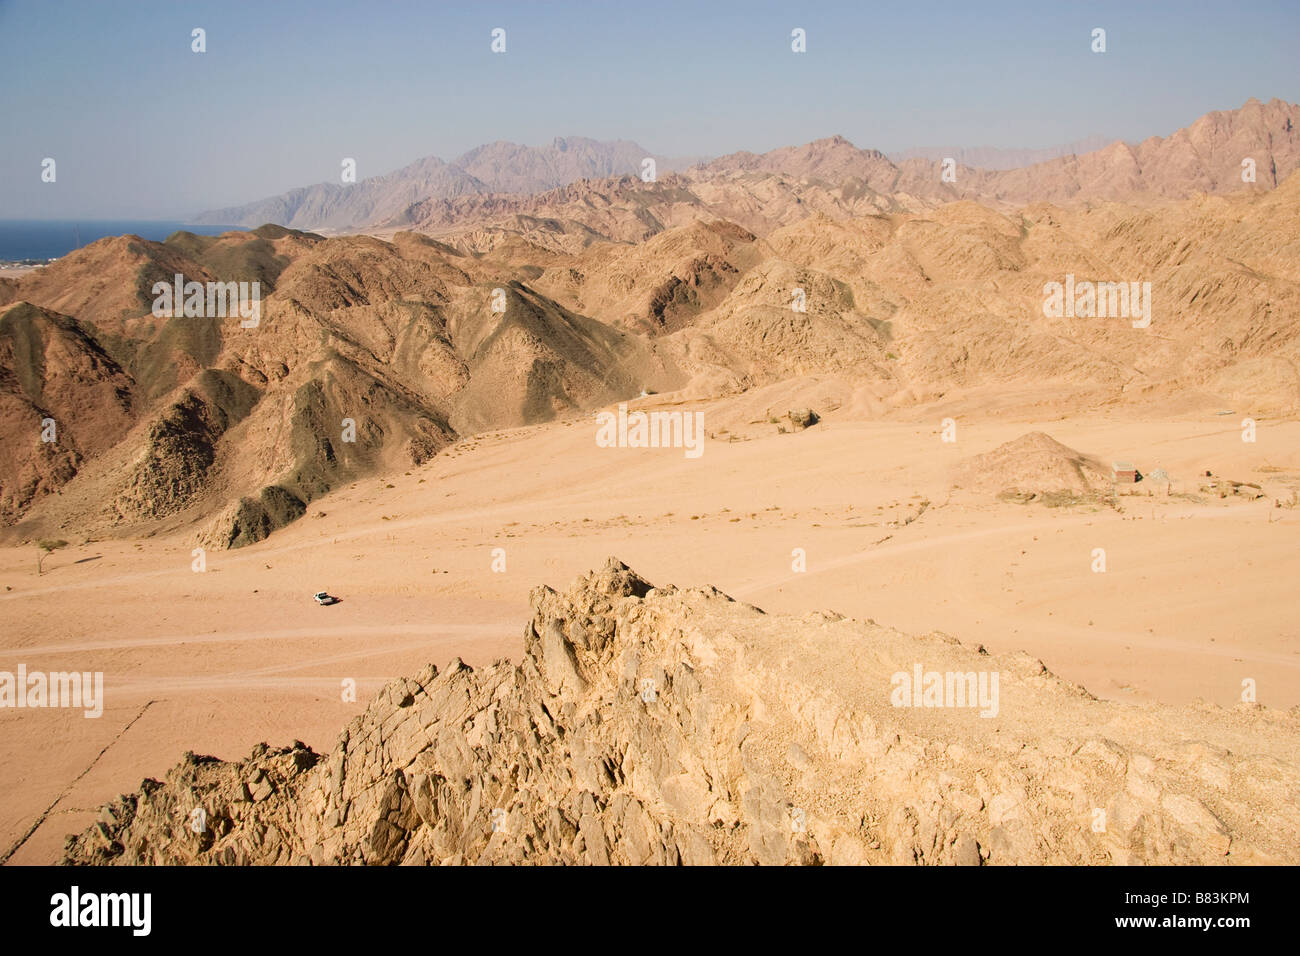 View South towards Laguna Bay from a hill in the desert above the Sinai resort of Dahab in Egypt - Stock Image